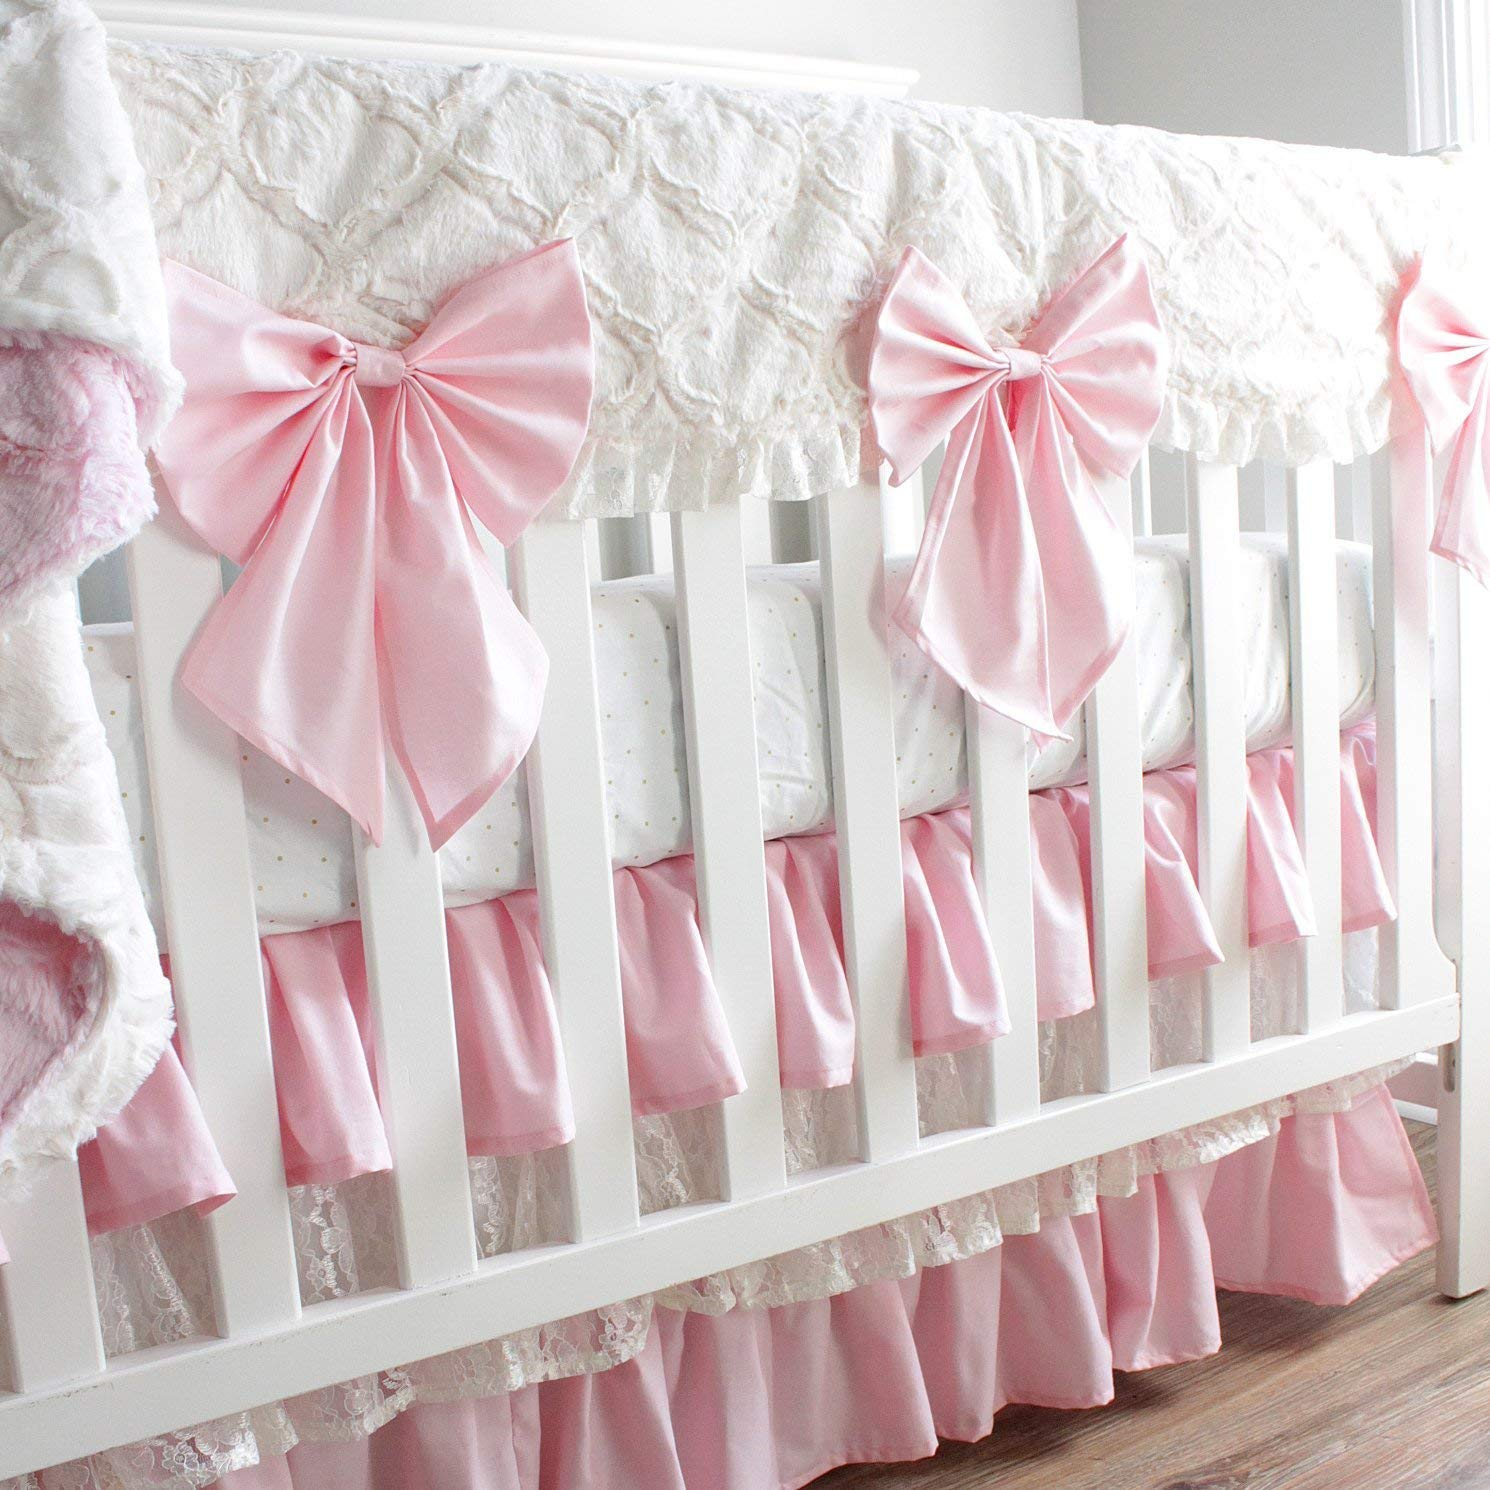 Cheap White Lace Baby Bedding Find White Lace Baby Bedding Deals On